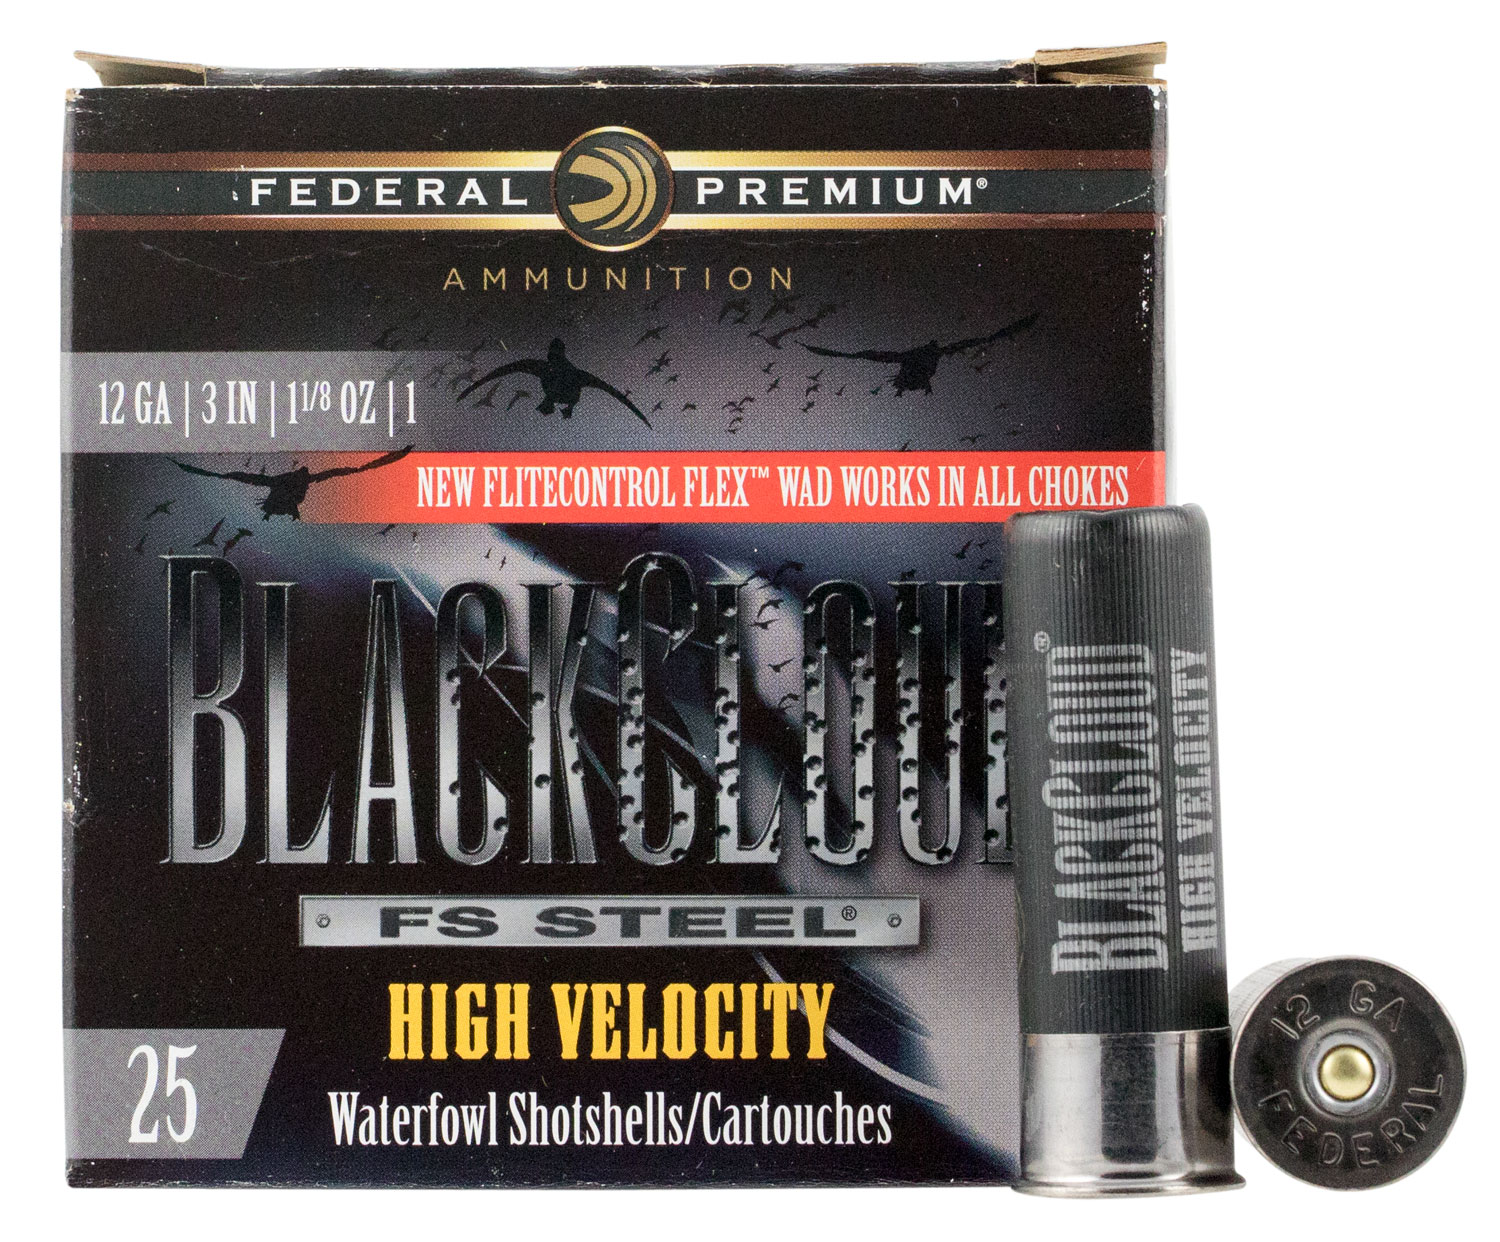 Federal PWBX1431 Black Cloud FS Steel High Velocity 12 Gauge 3